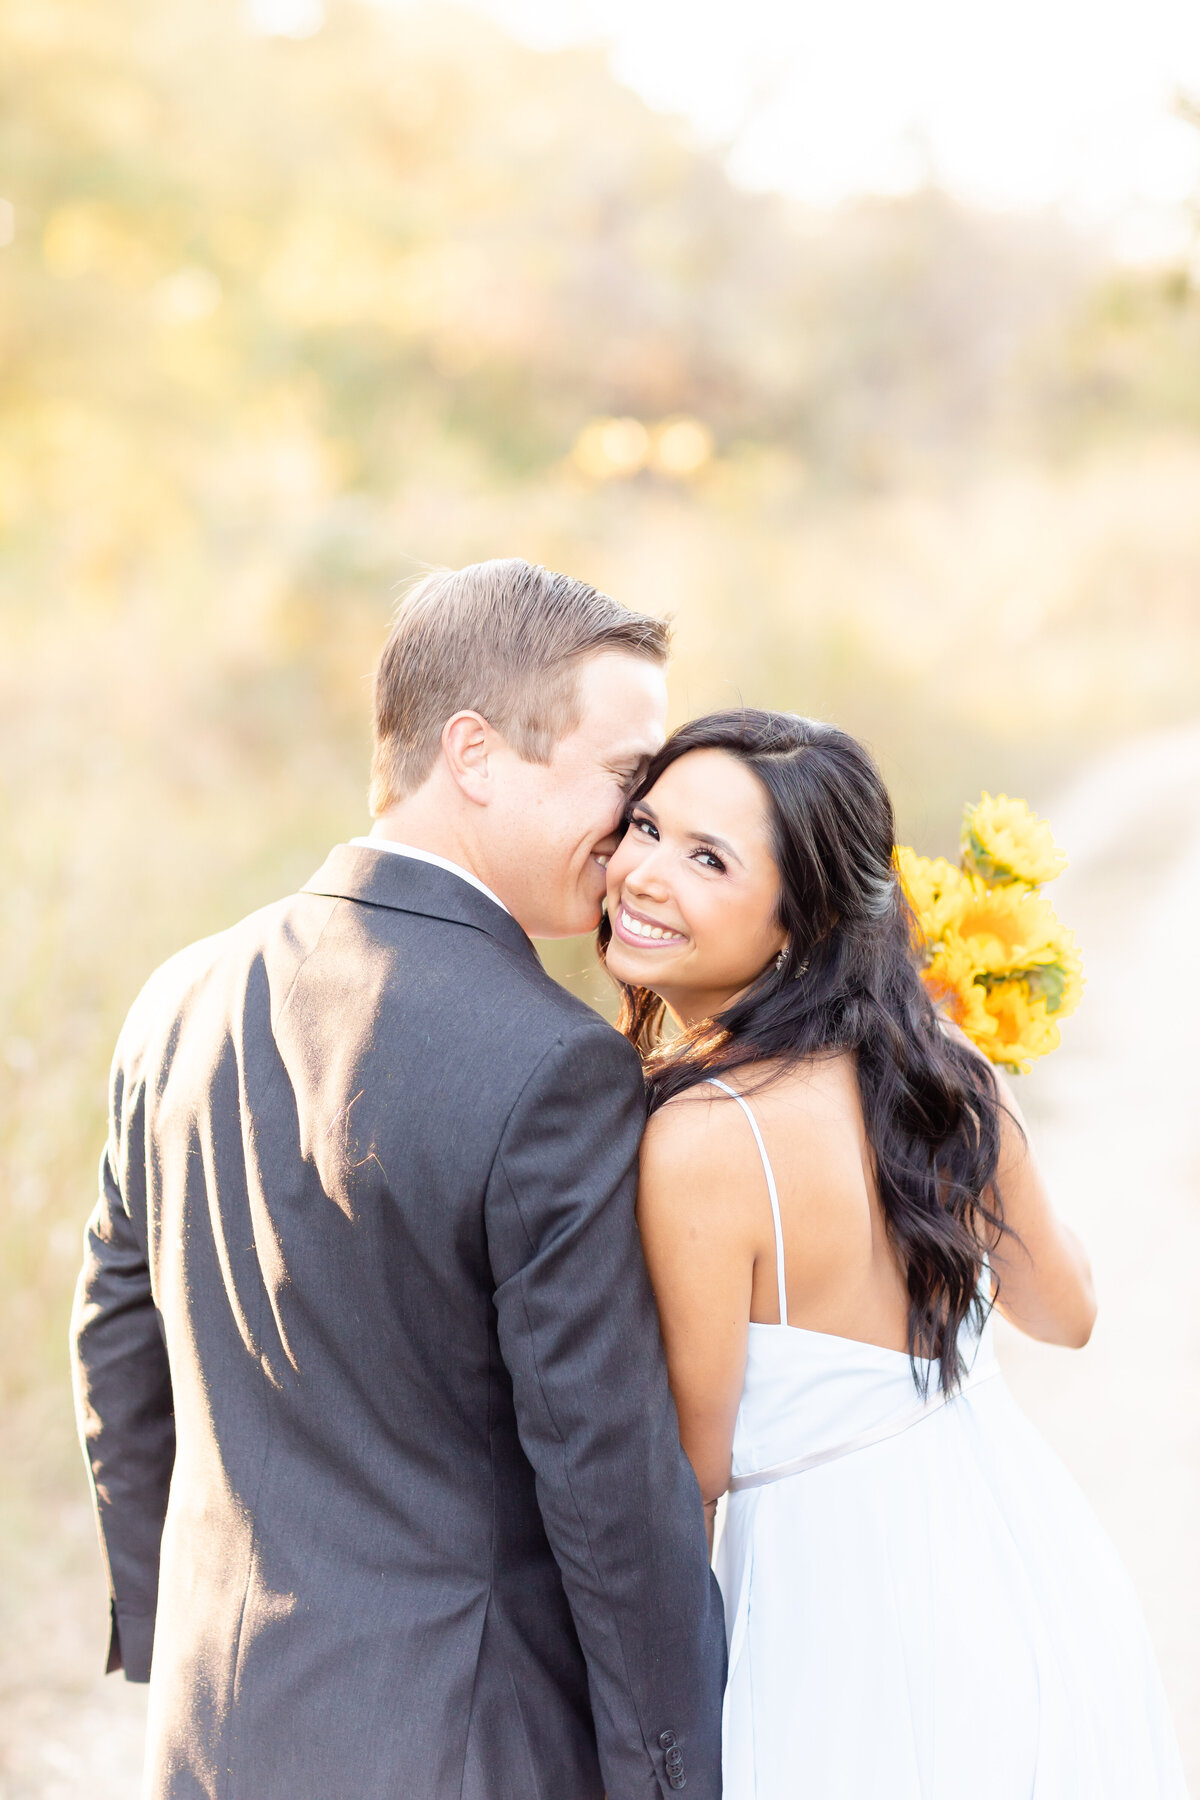 Analicia+Regan_EngagementSession_HannahCharisPhotography-73